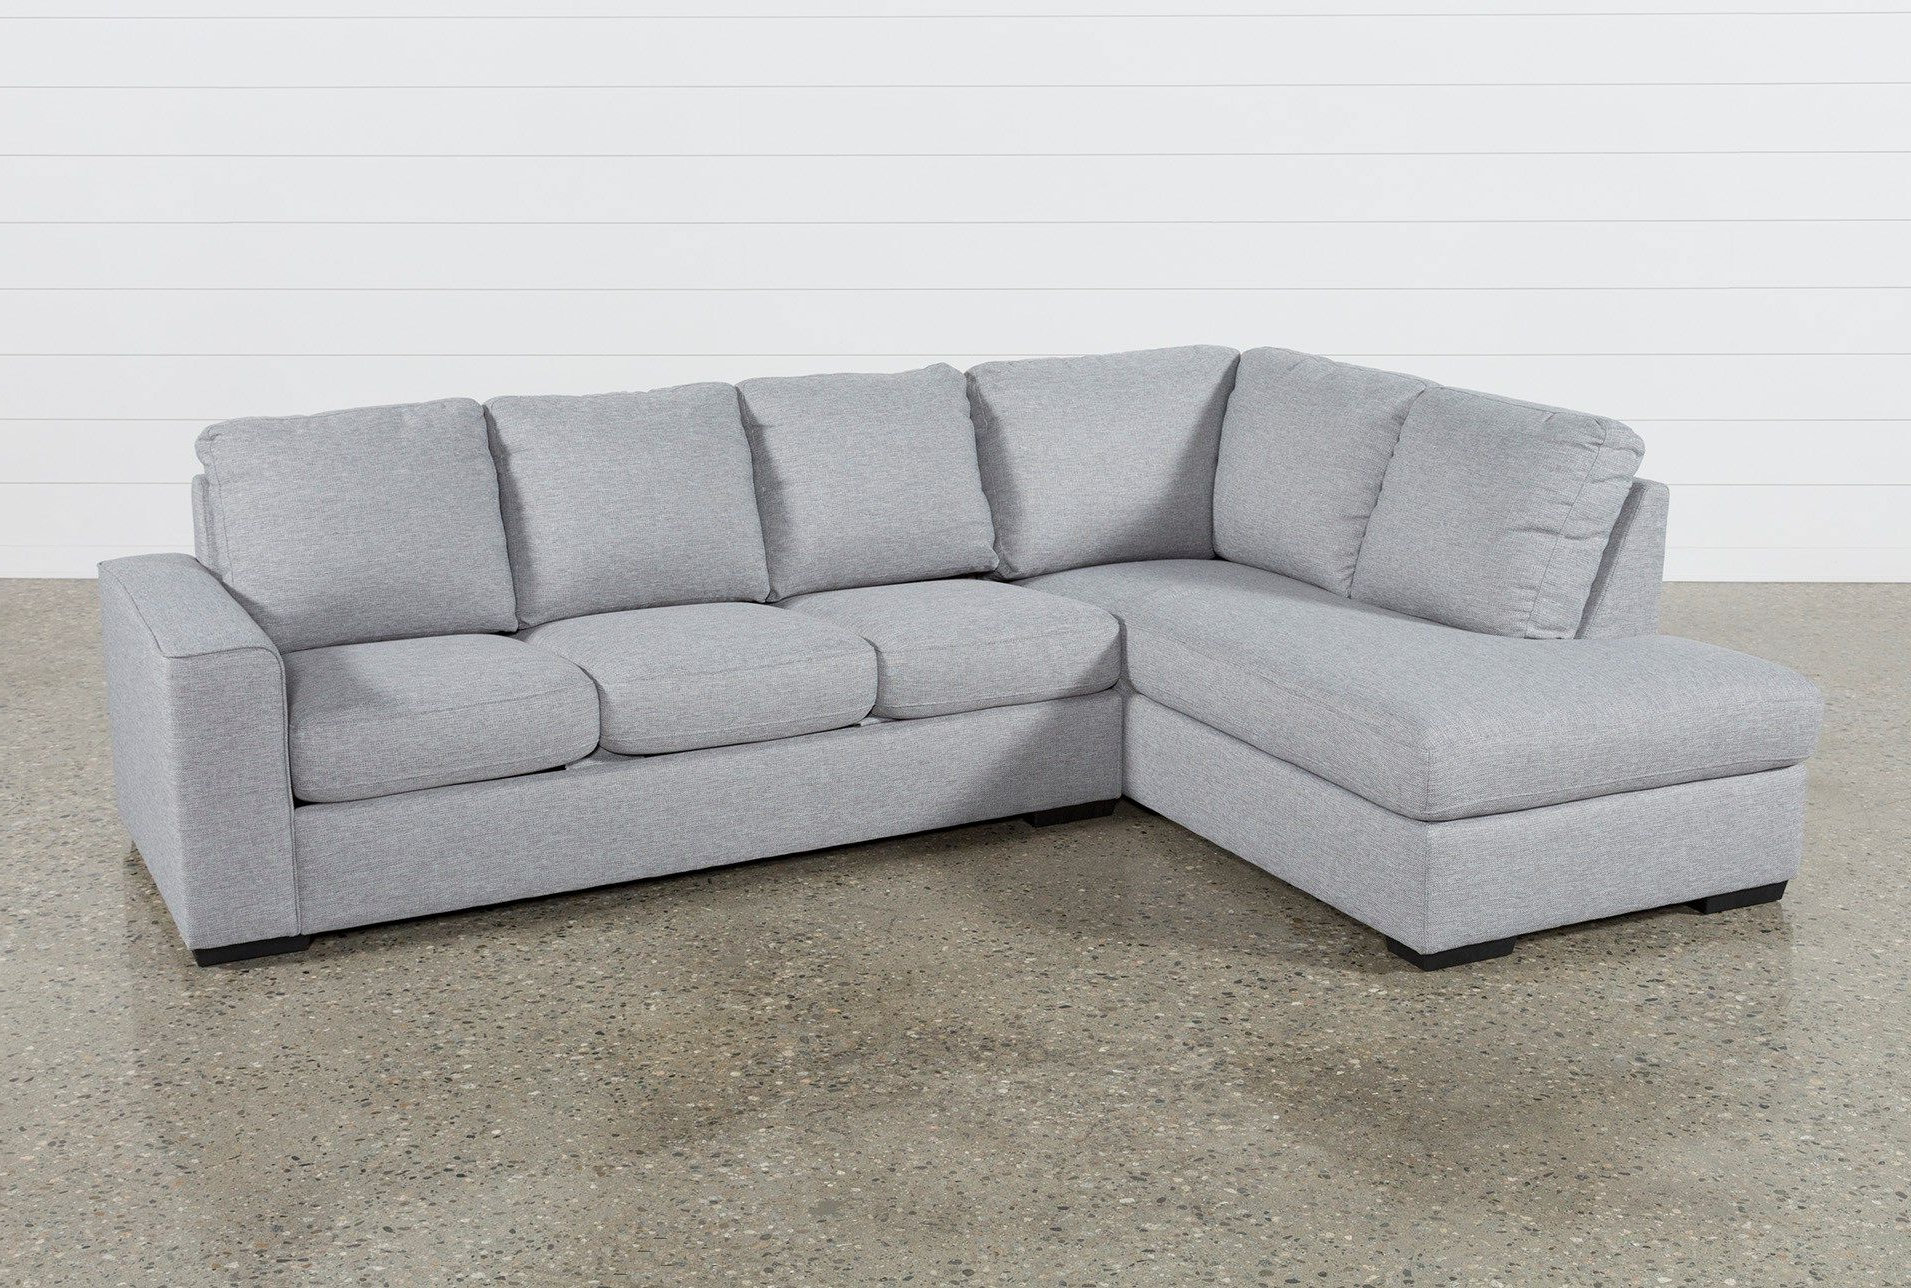 Lucy Dark Grey 2 Piece Sleeper Sectionals With Laf Chaise With Regard To Best And Newest Lucy Grey 2 Piece Sectional W/laf Chaise In (View 3 of 20)